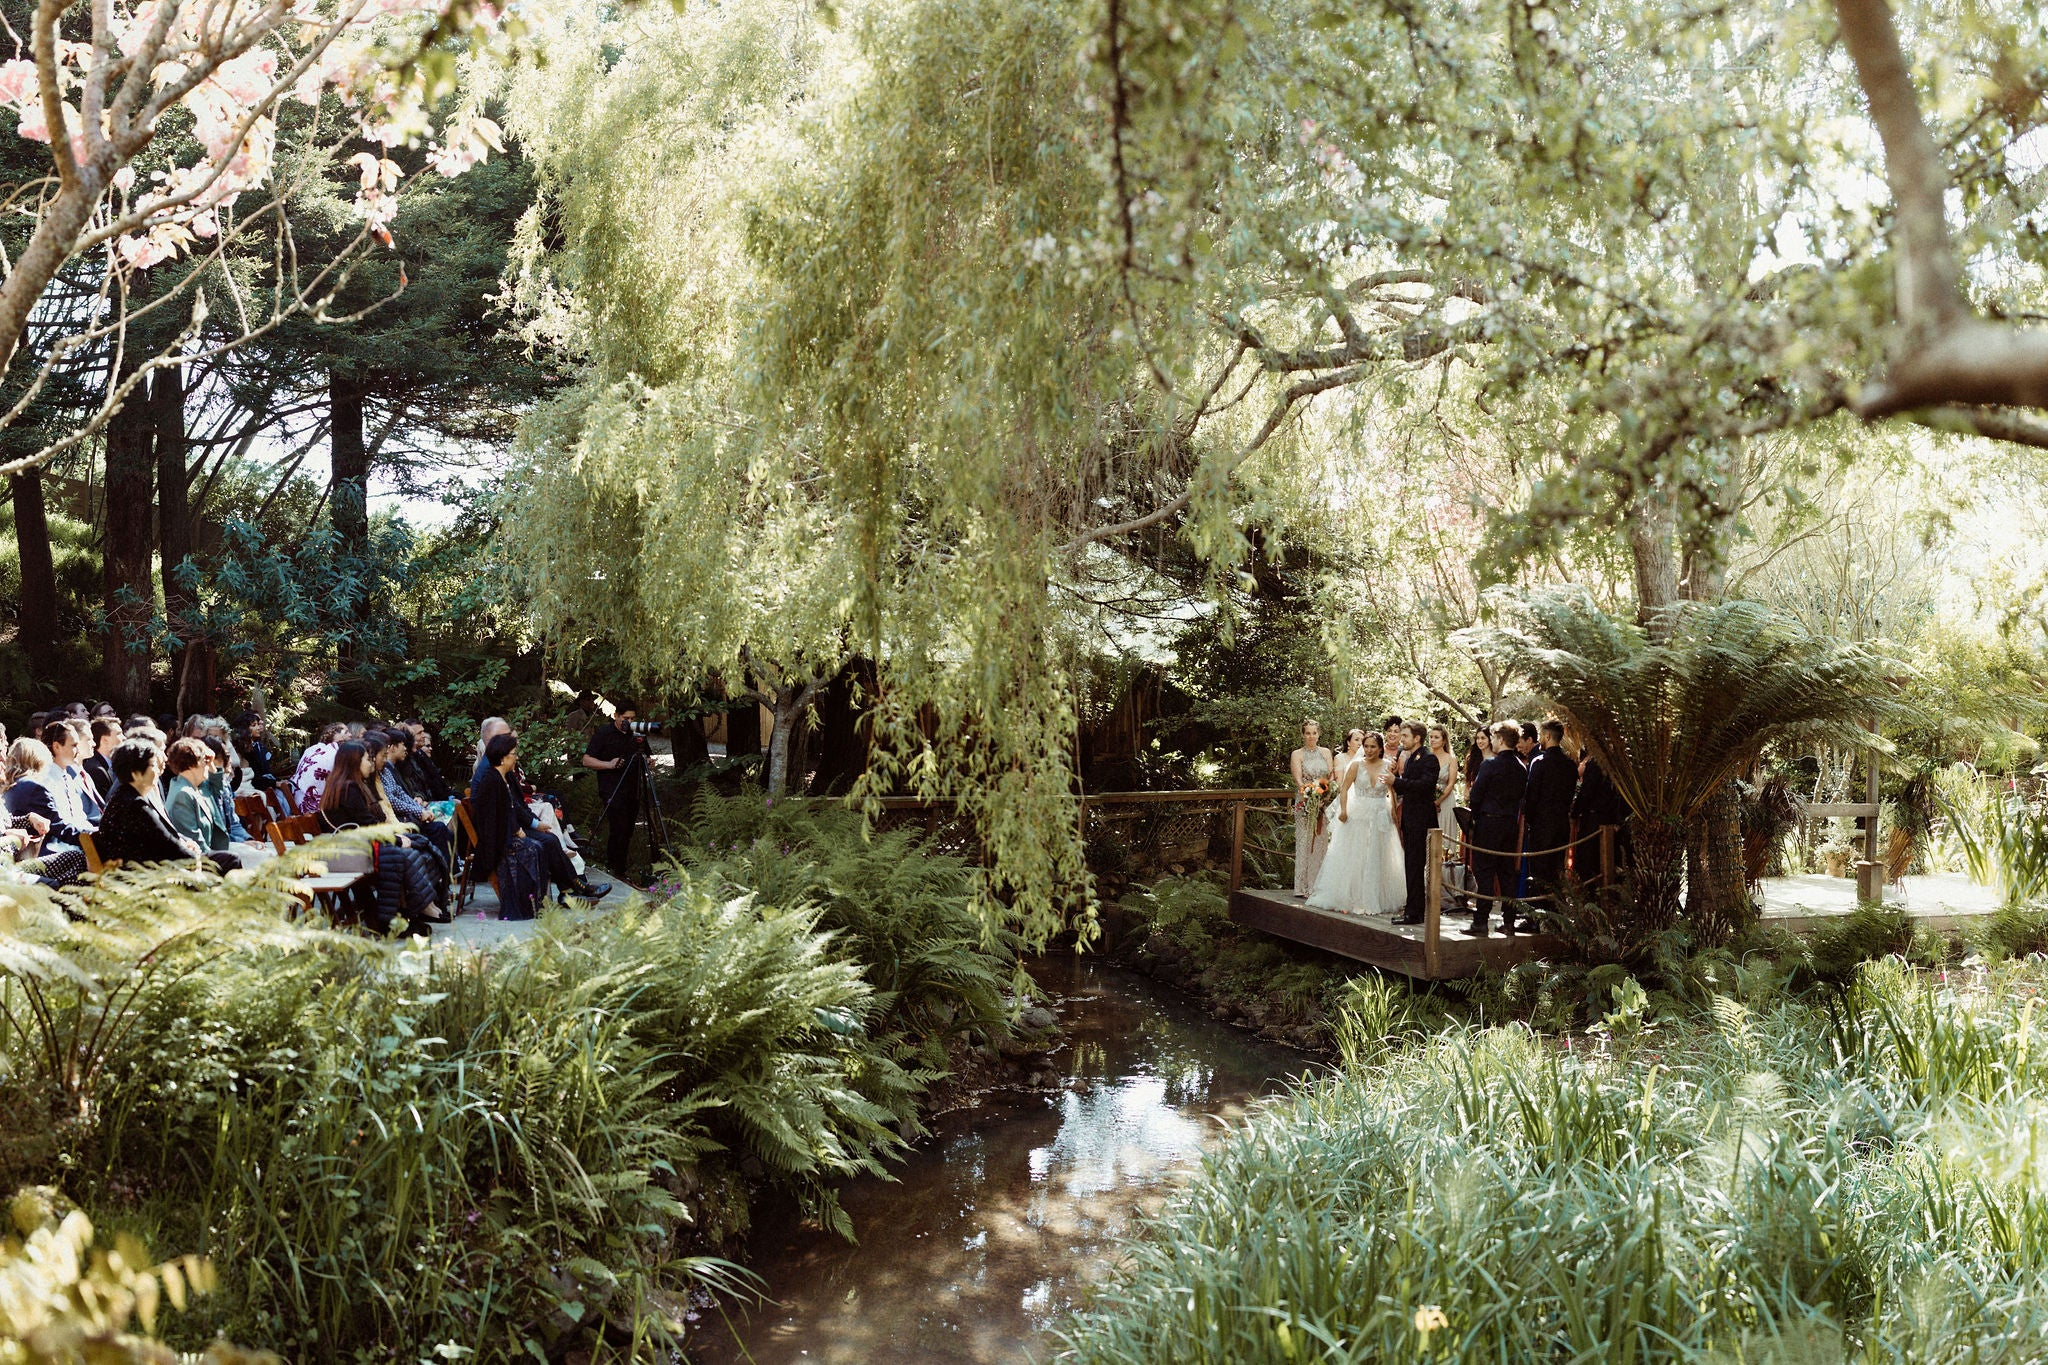 wedding couple in a forest on a platform